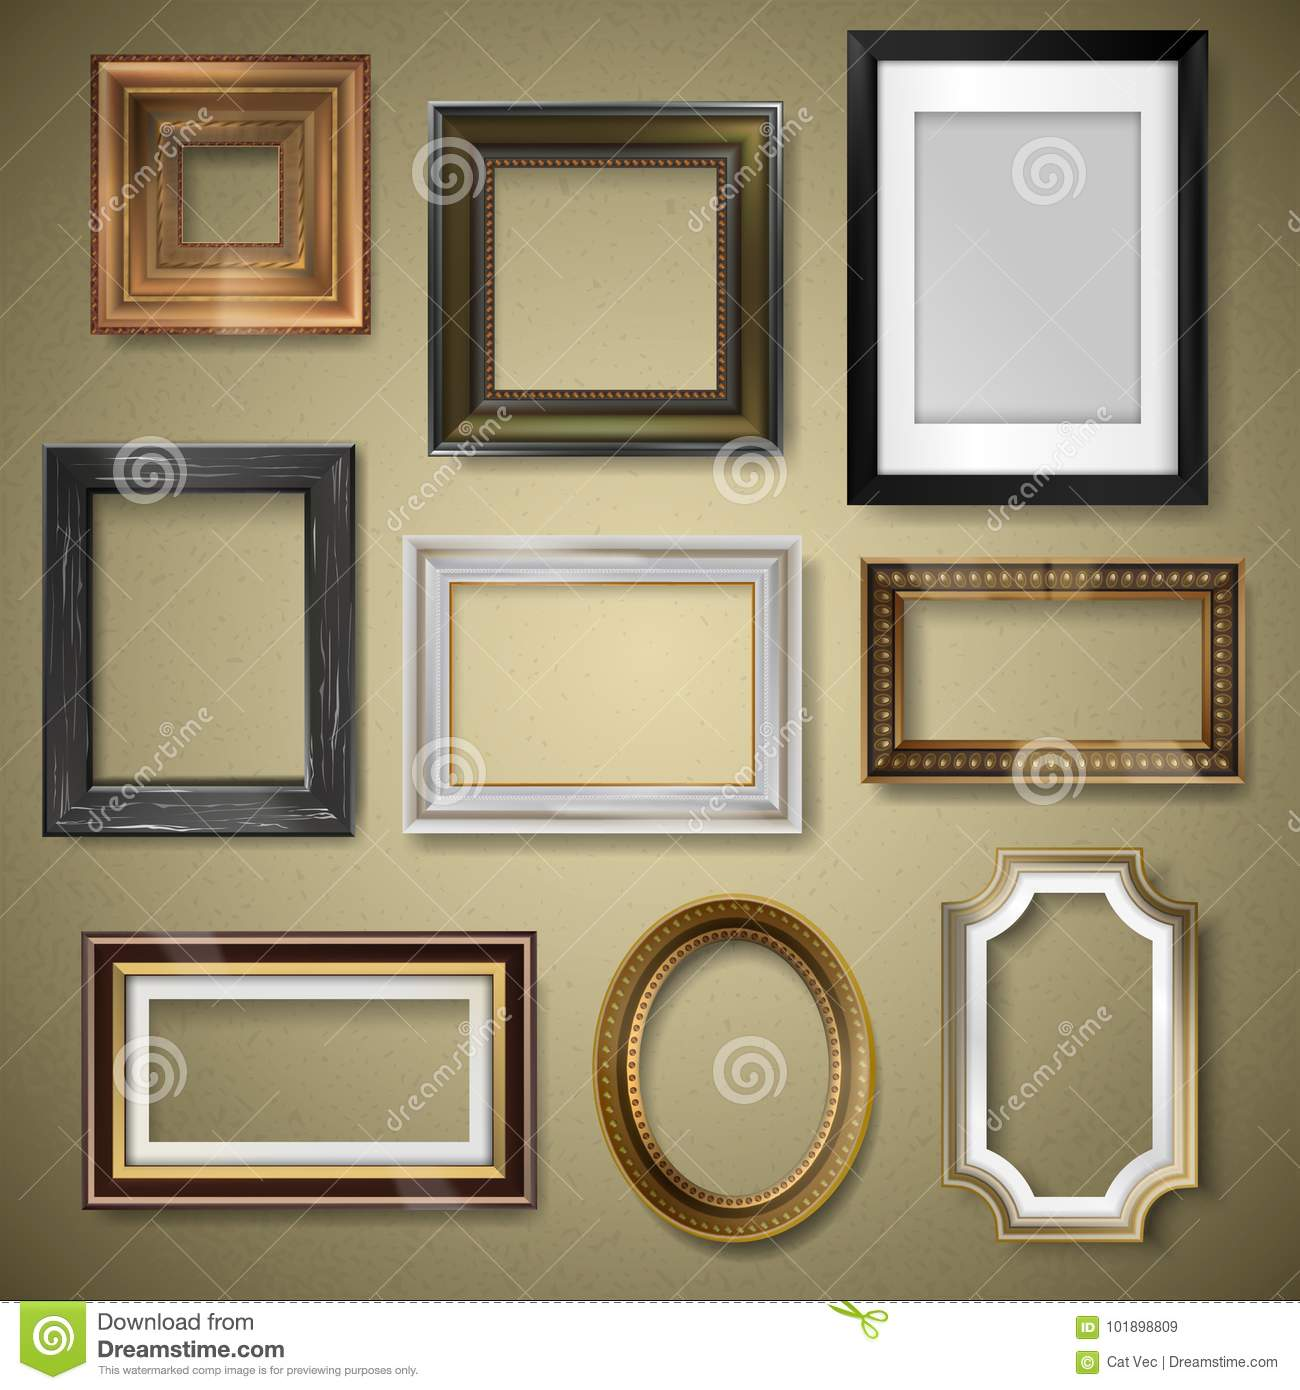 Charming Decorative Frames For Walls Images - The Wall Art ...